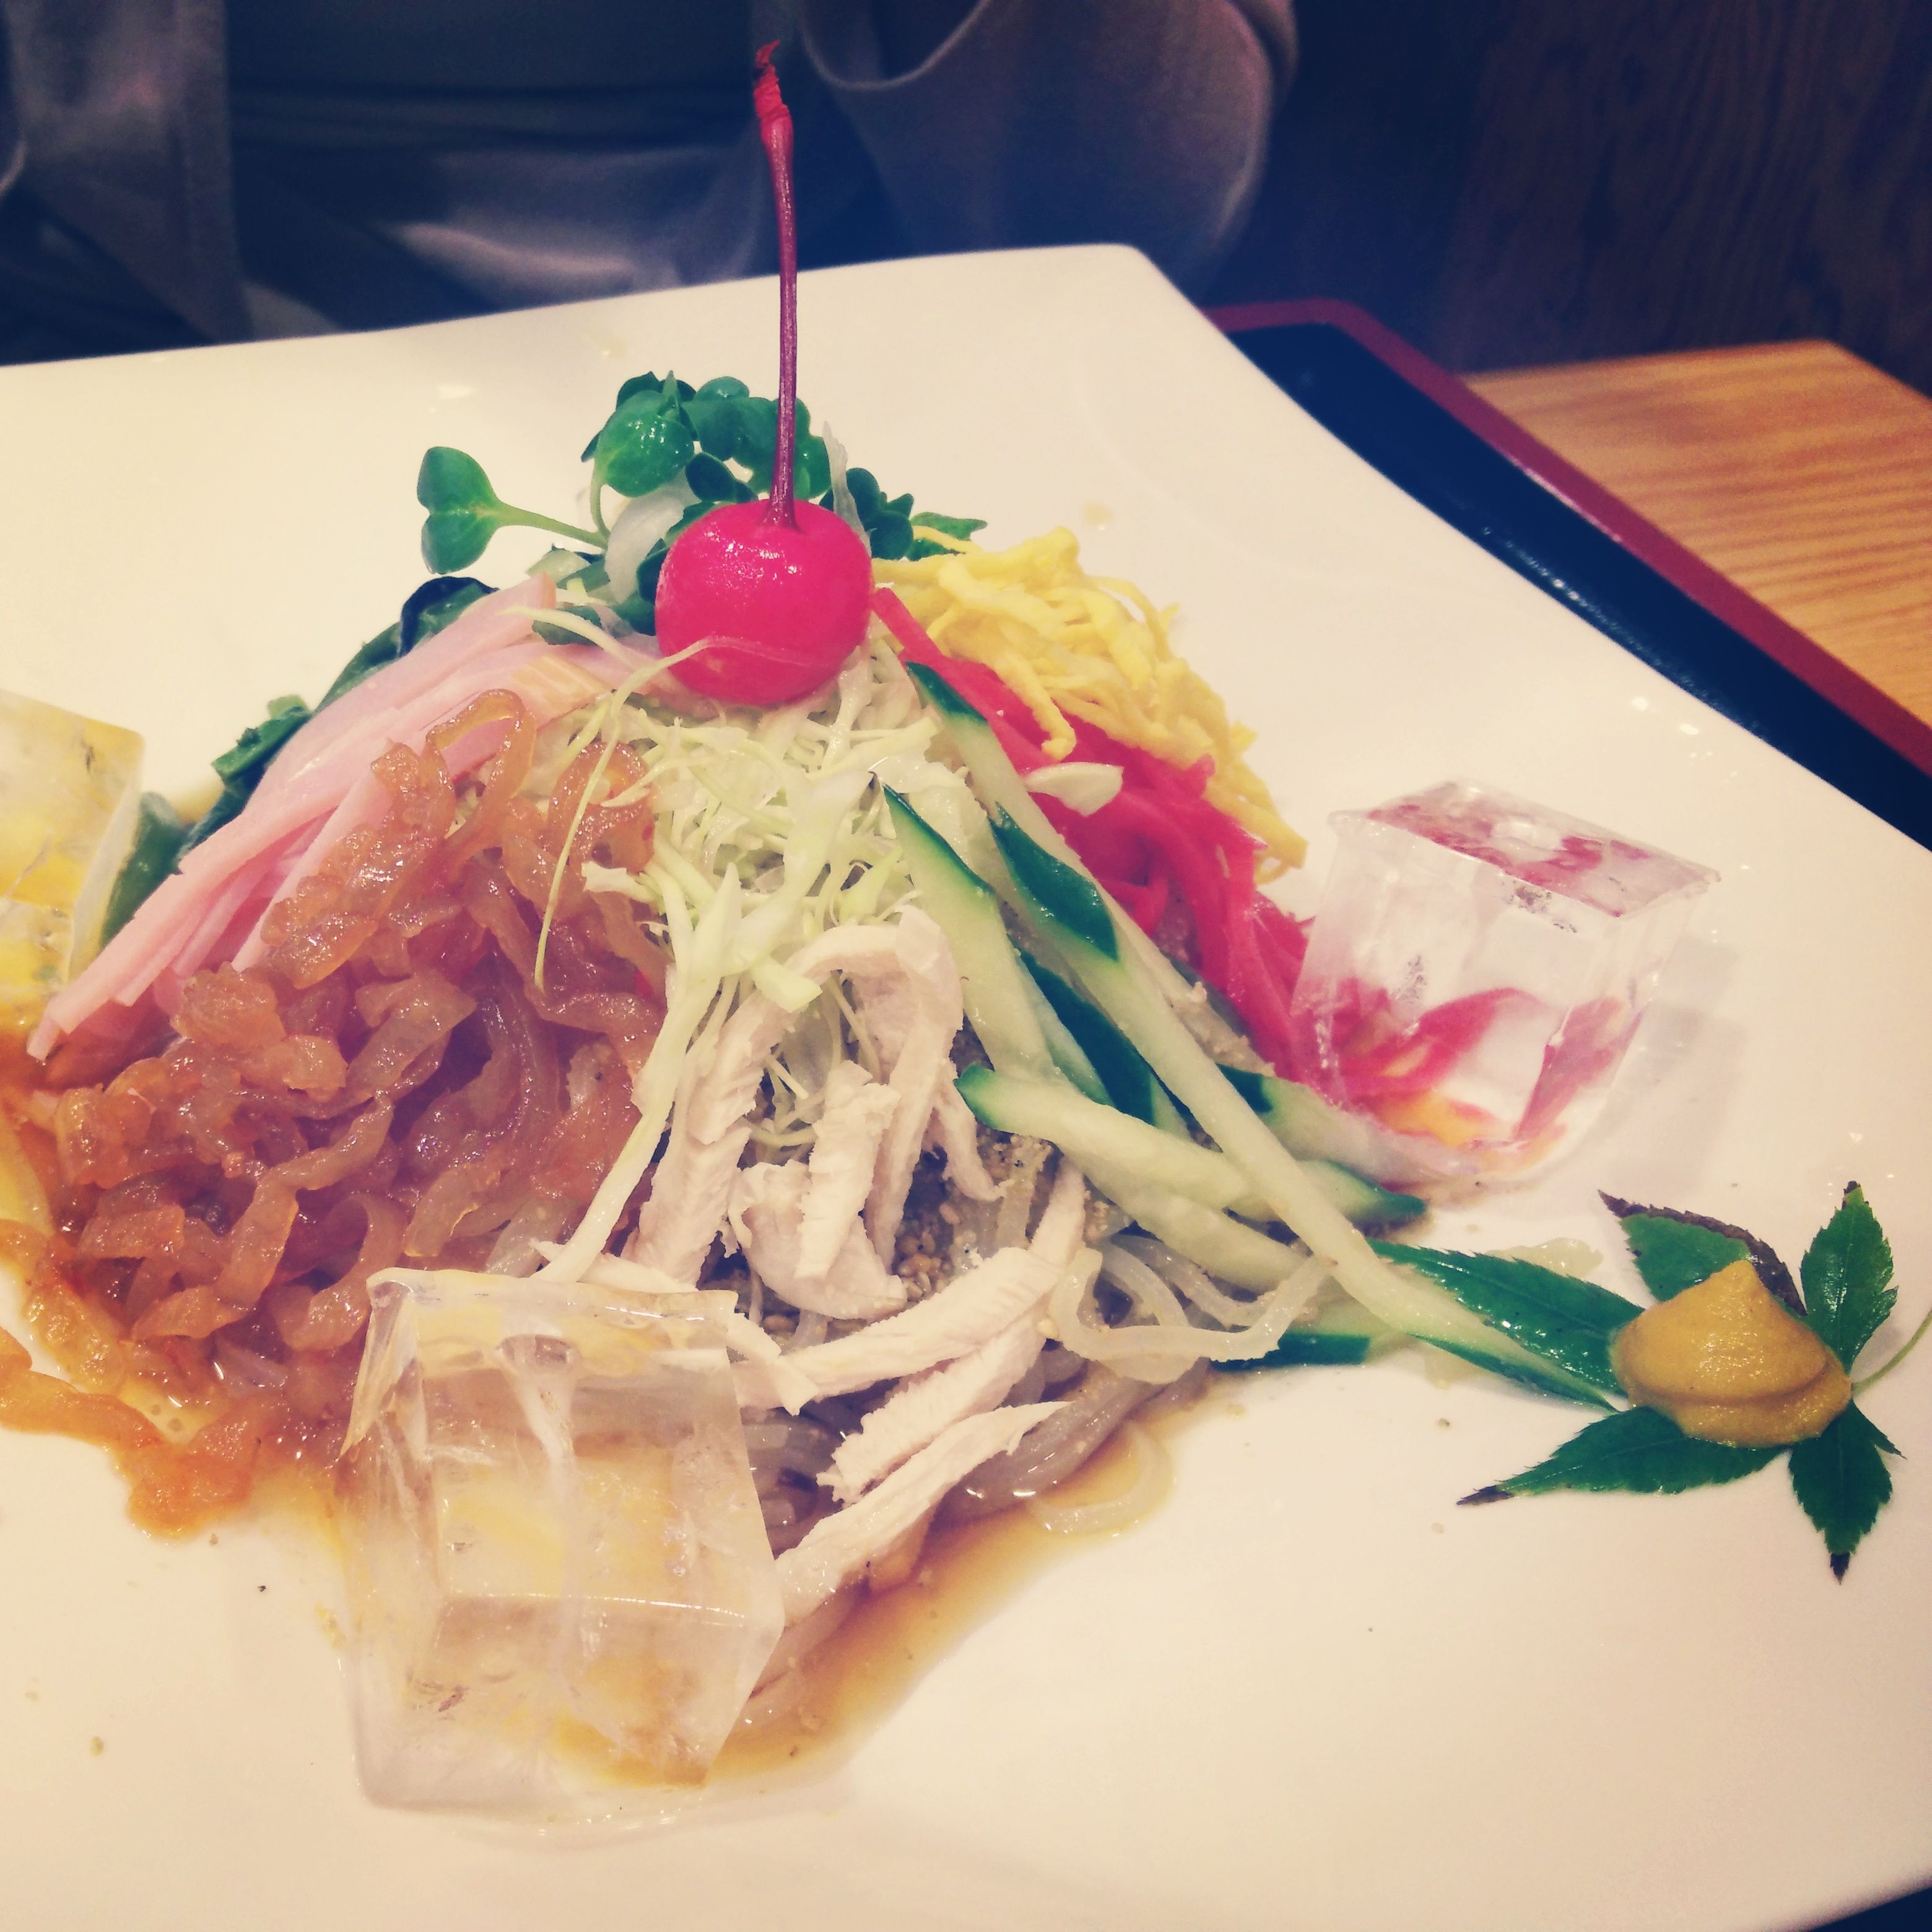 Hiyashi Chyuuka - cold noodles with vegetables, seafood, and ham. Perfect for those warm days.